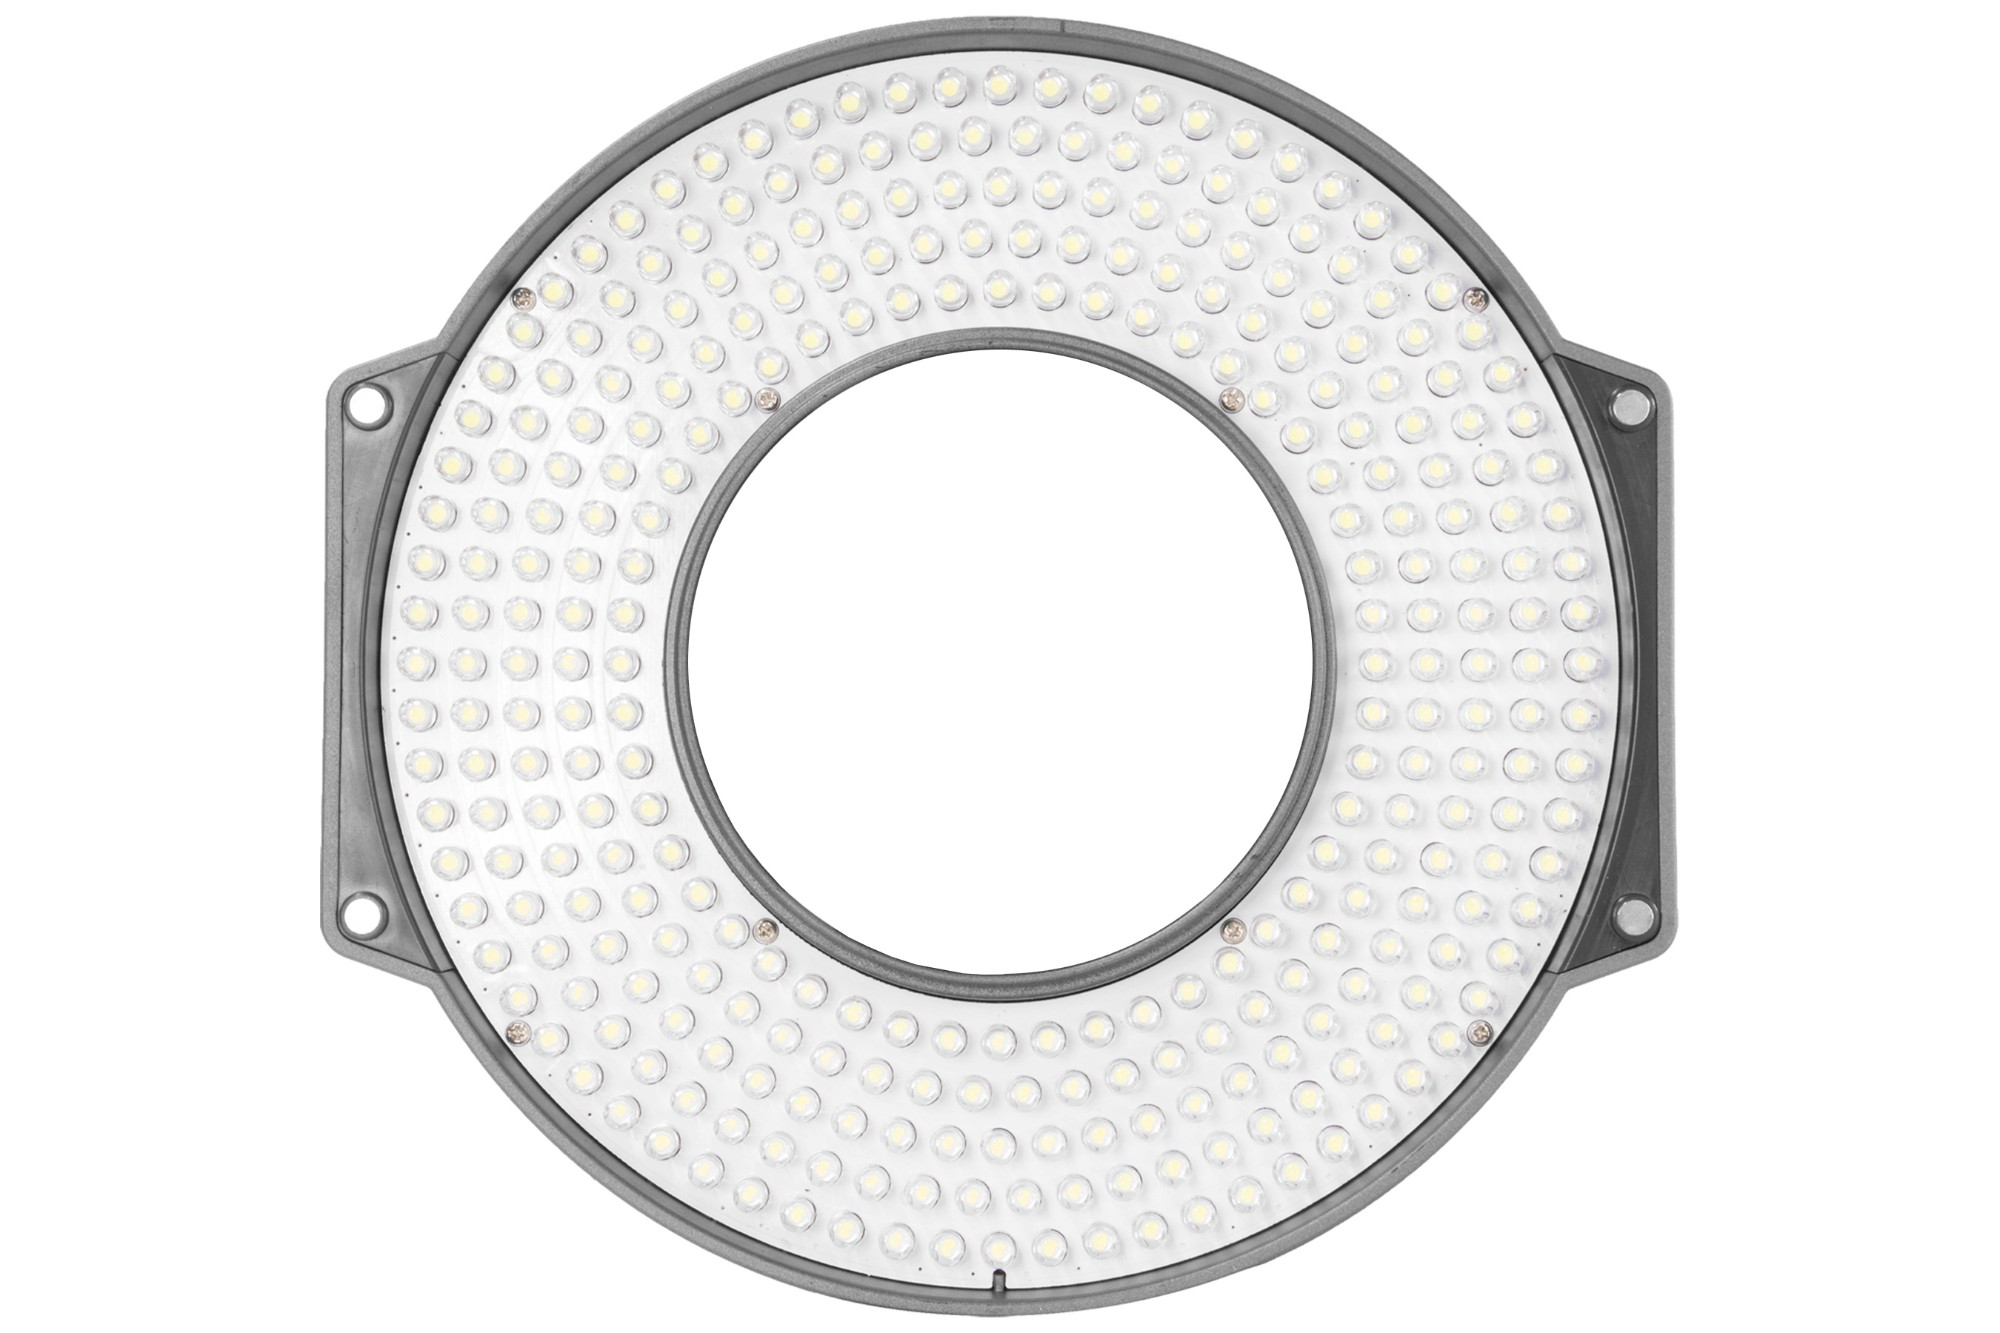 F&V R300 SE Daylight Ring Light